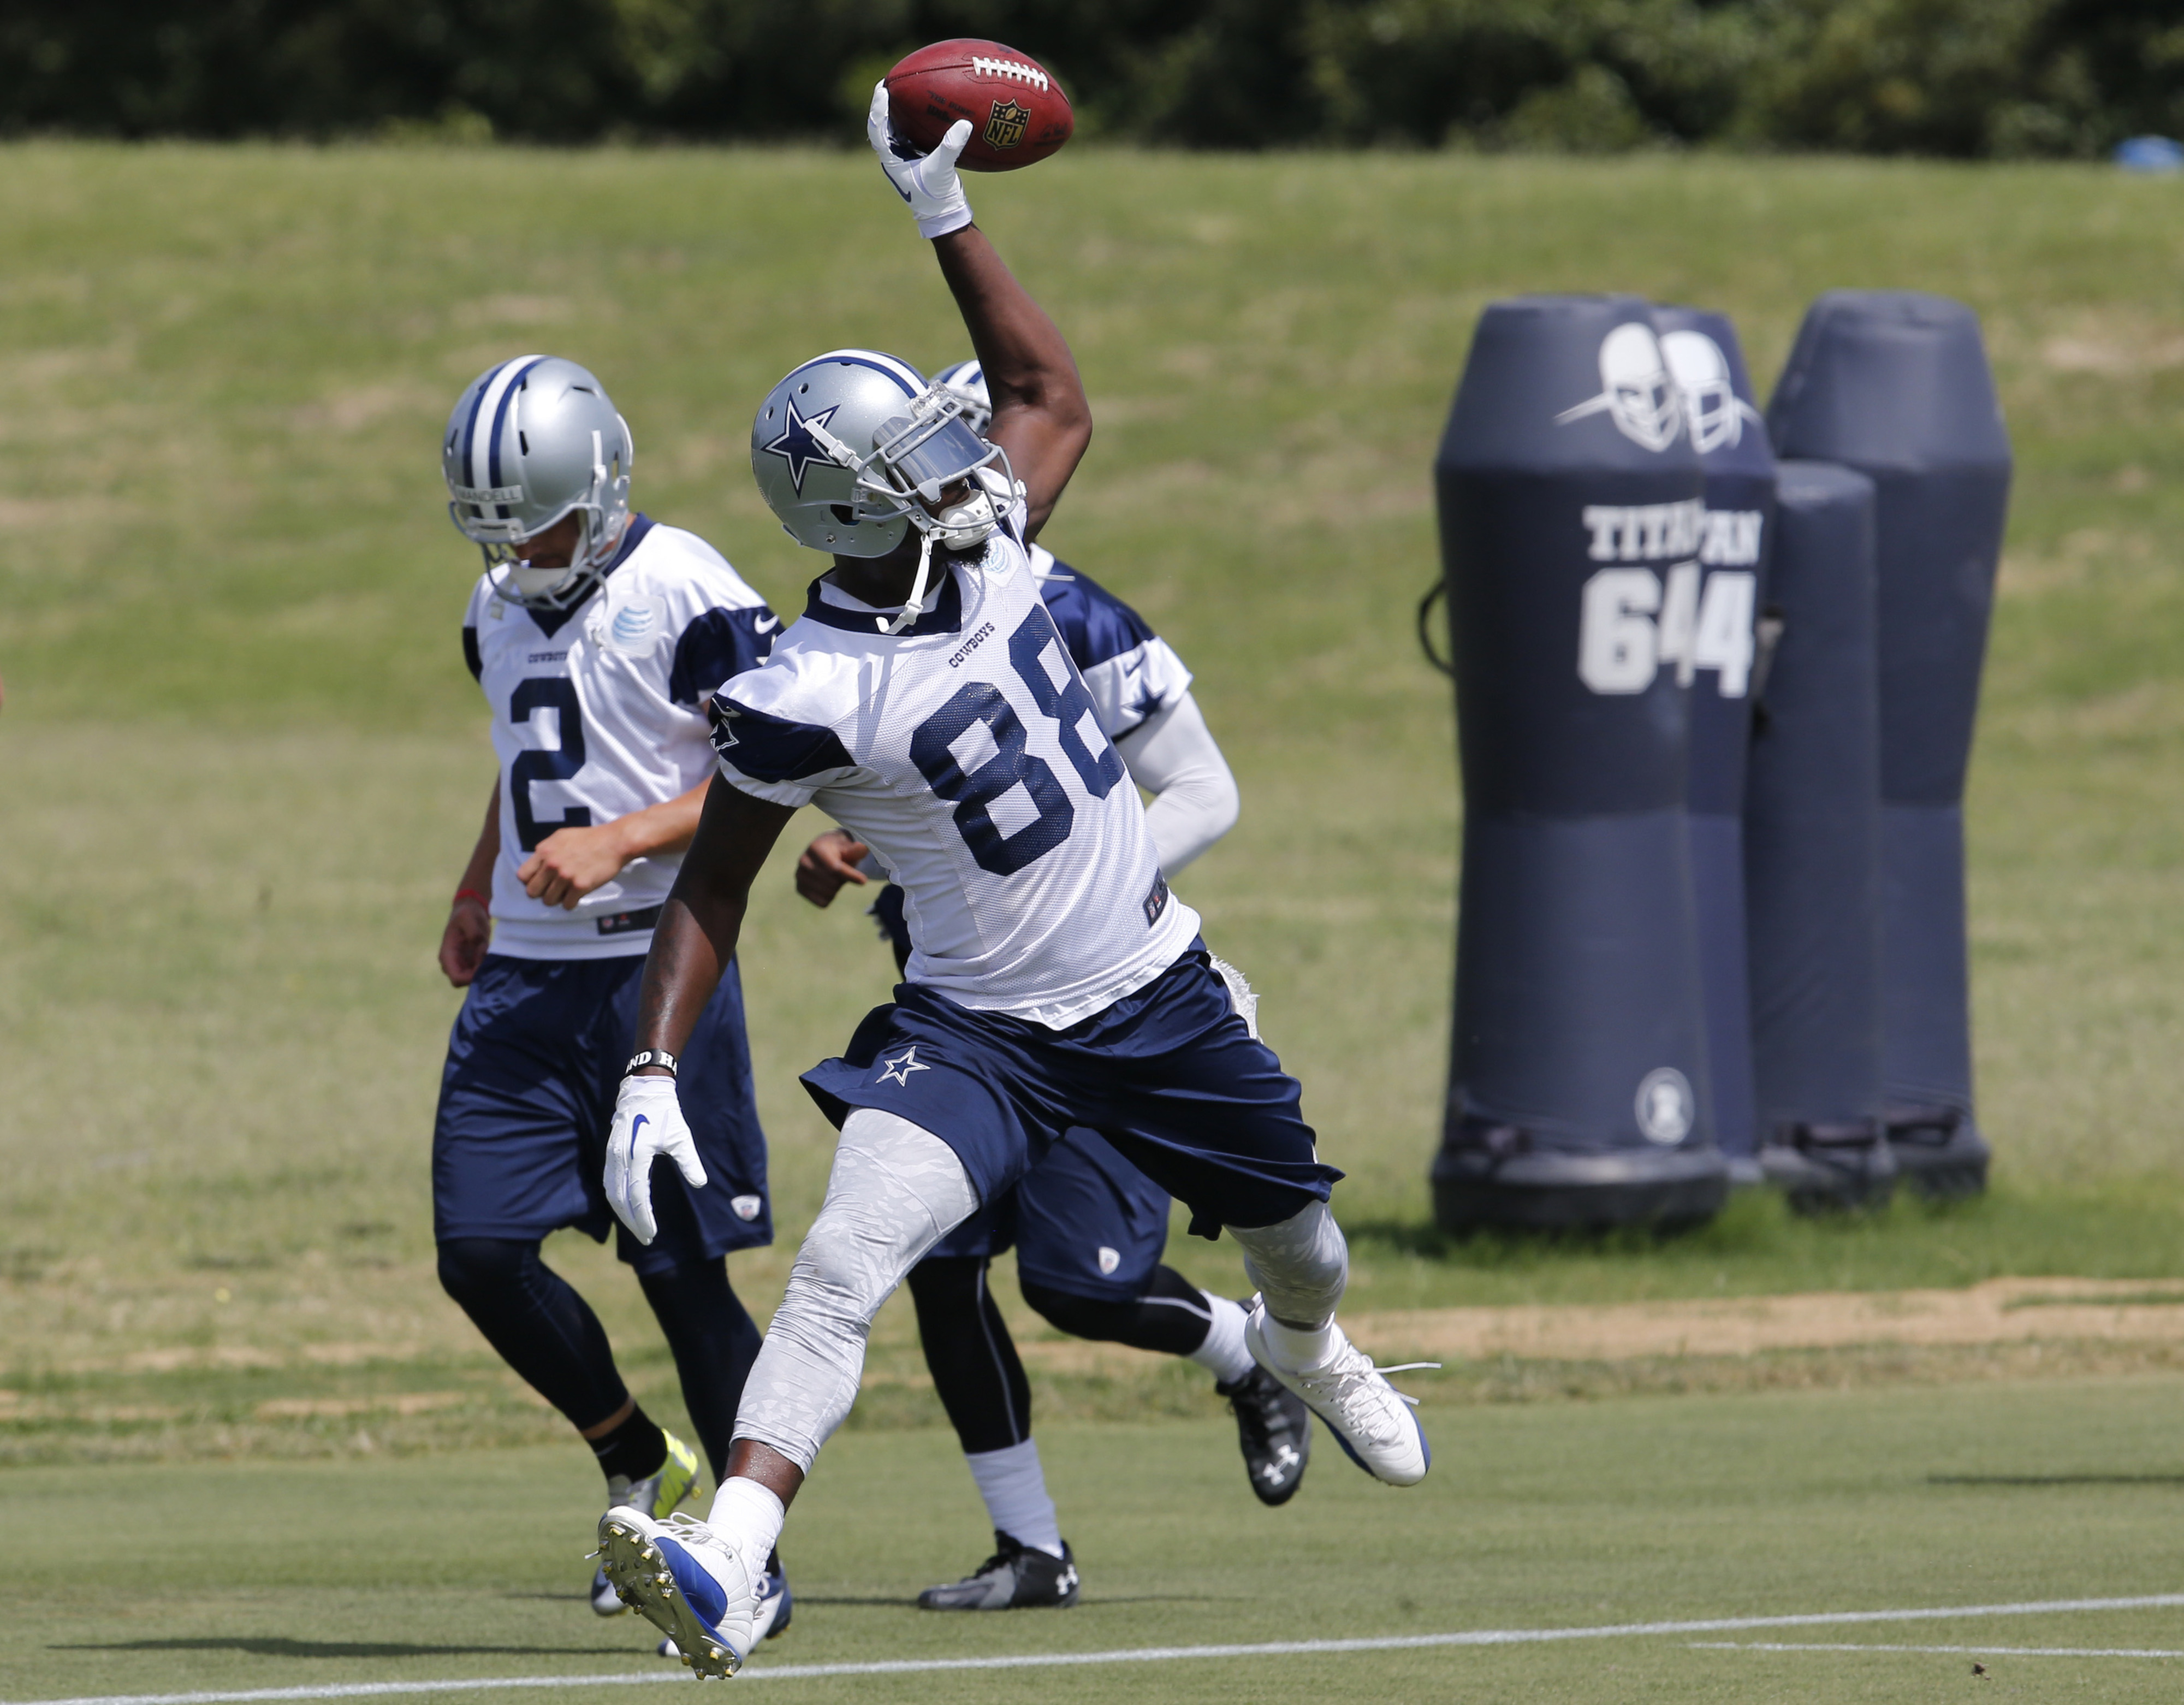 Dez Is Awesome!